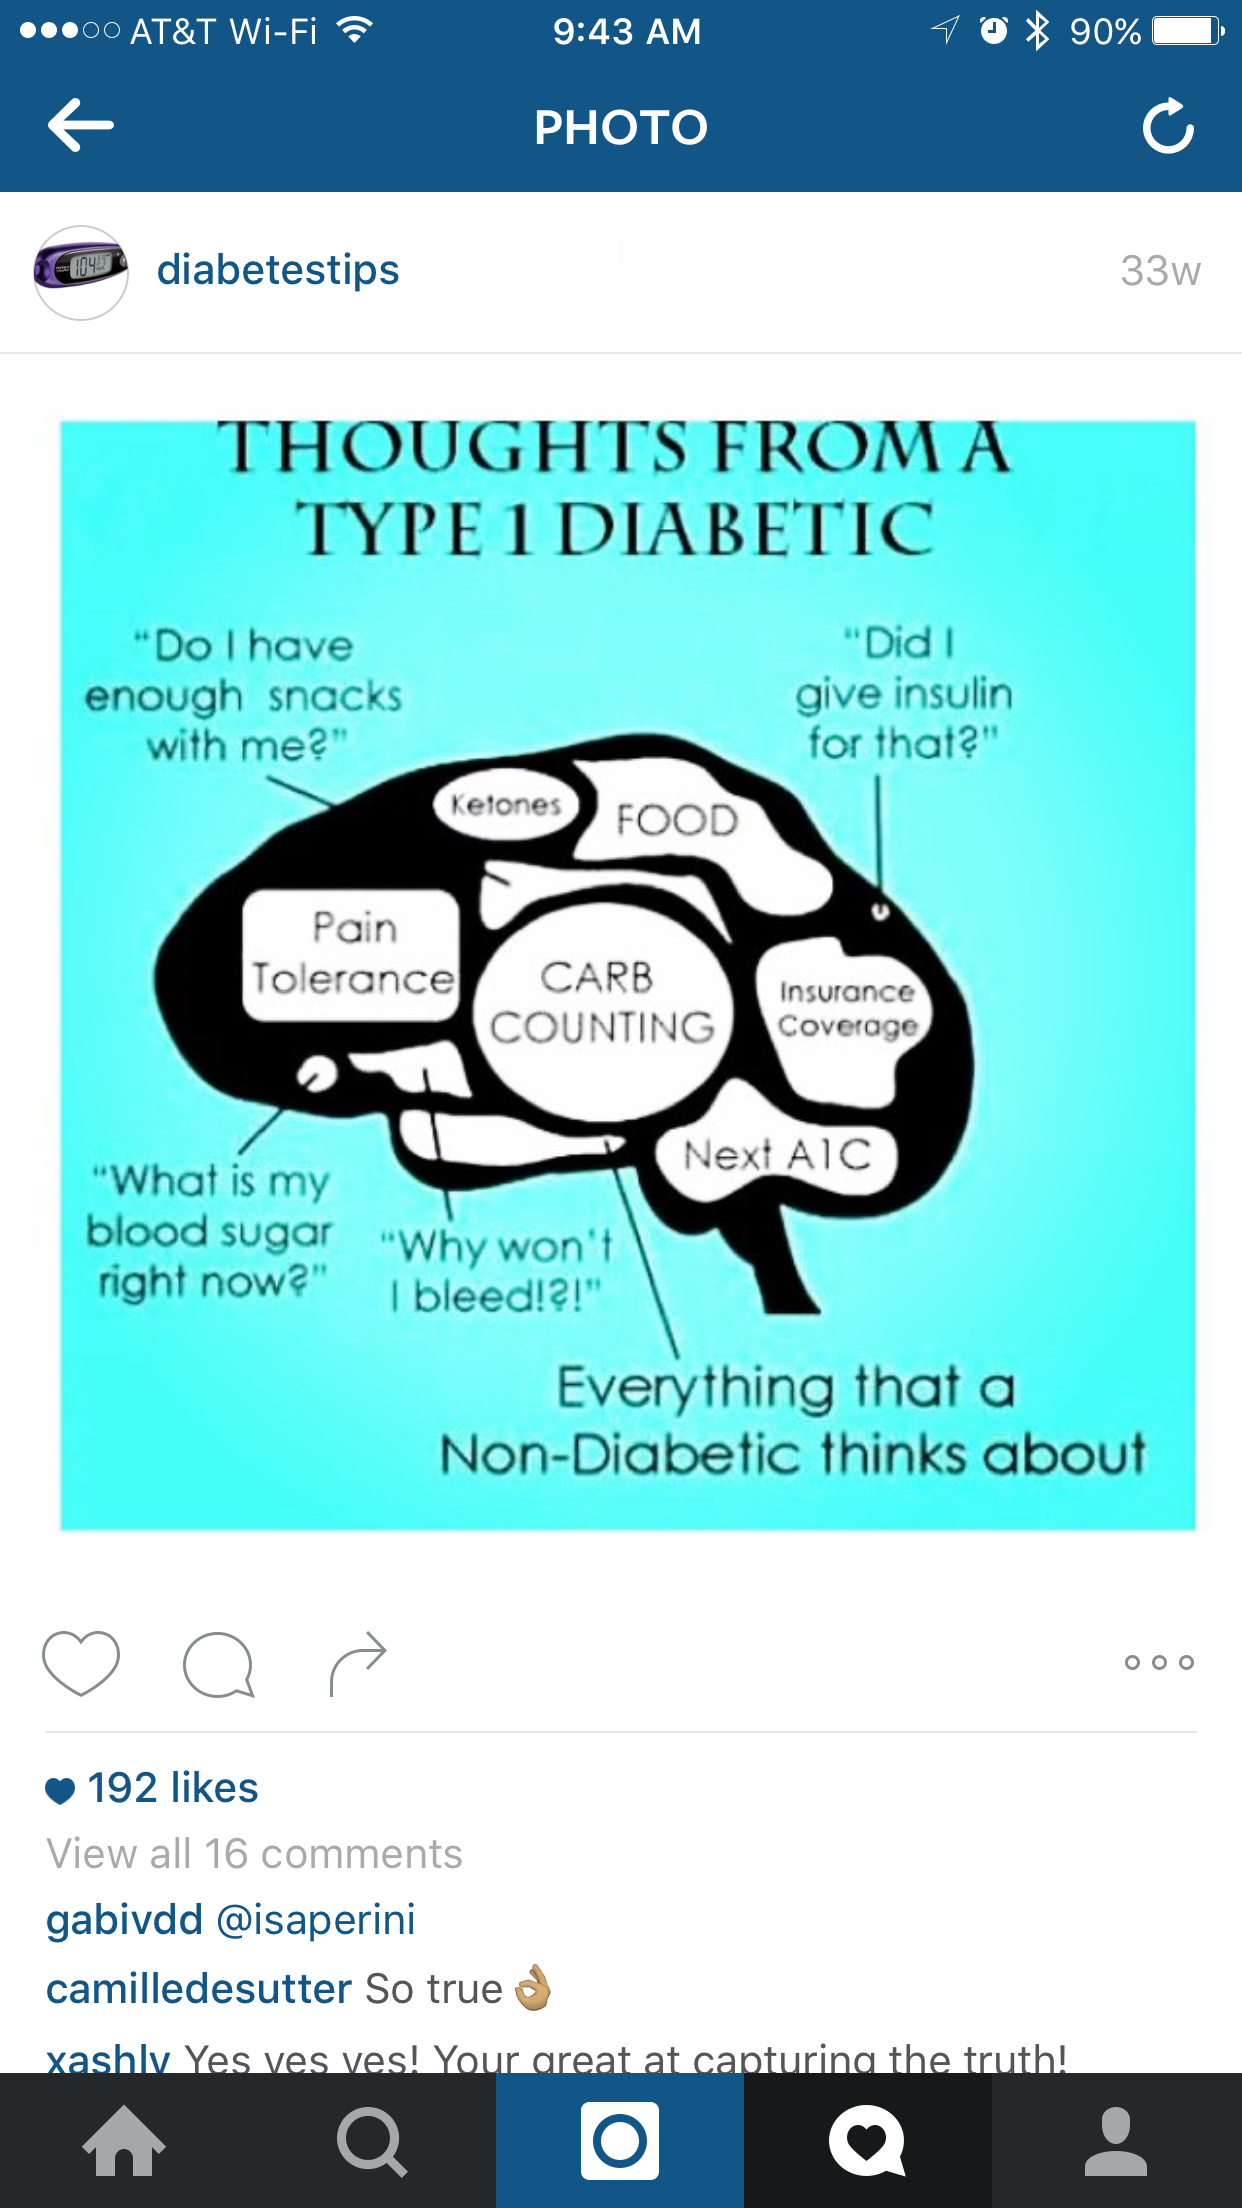 Jenna is in Instagram @DiabetesTips - Search in your app or click on this image to check her out and follow.